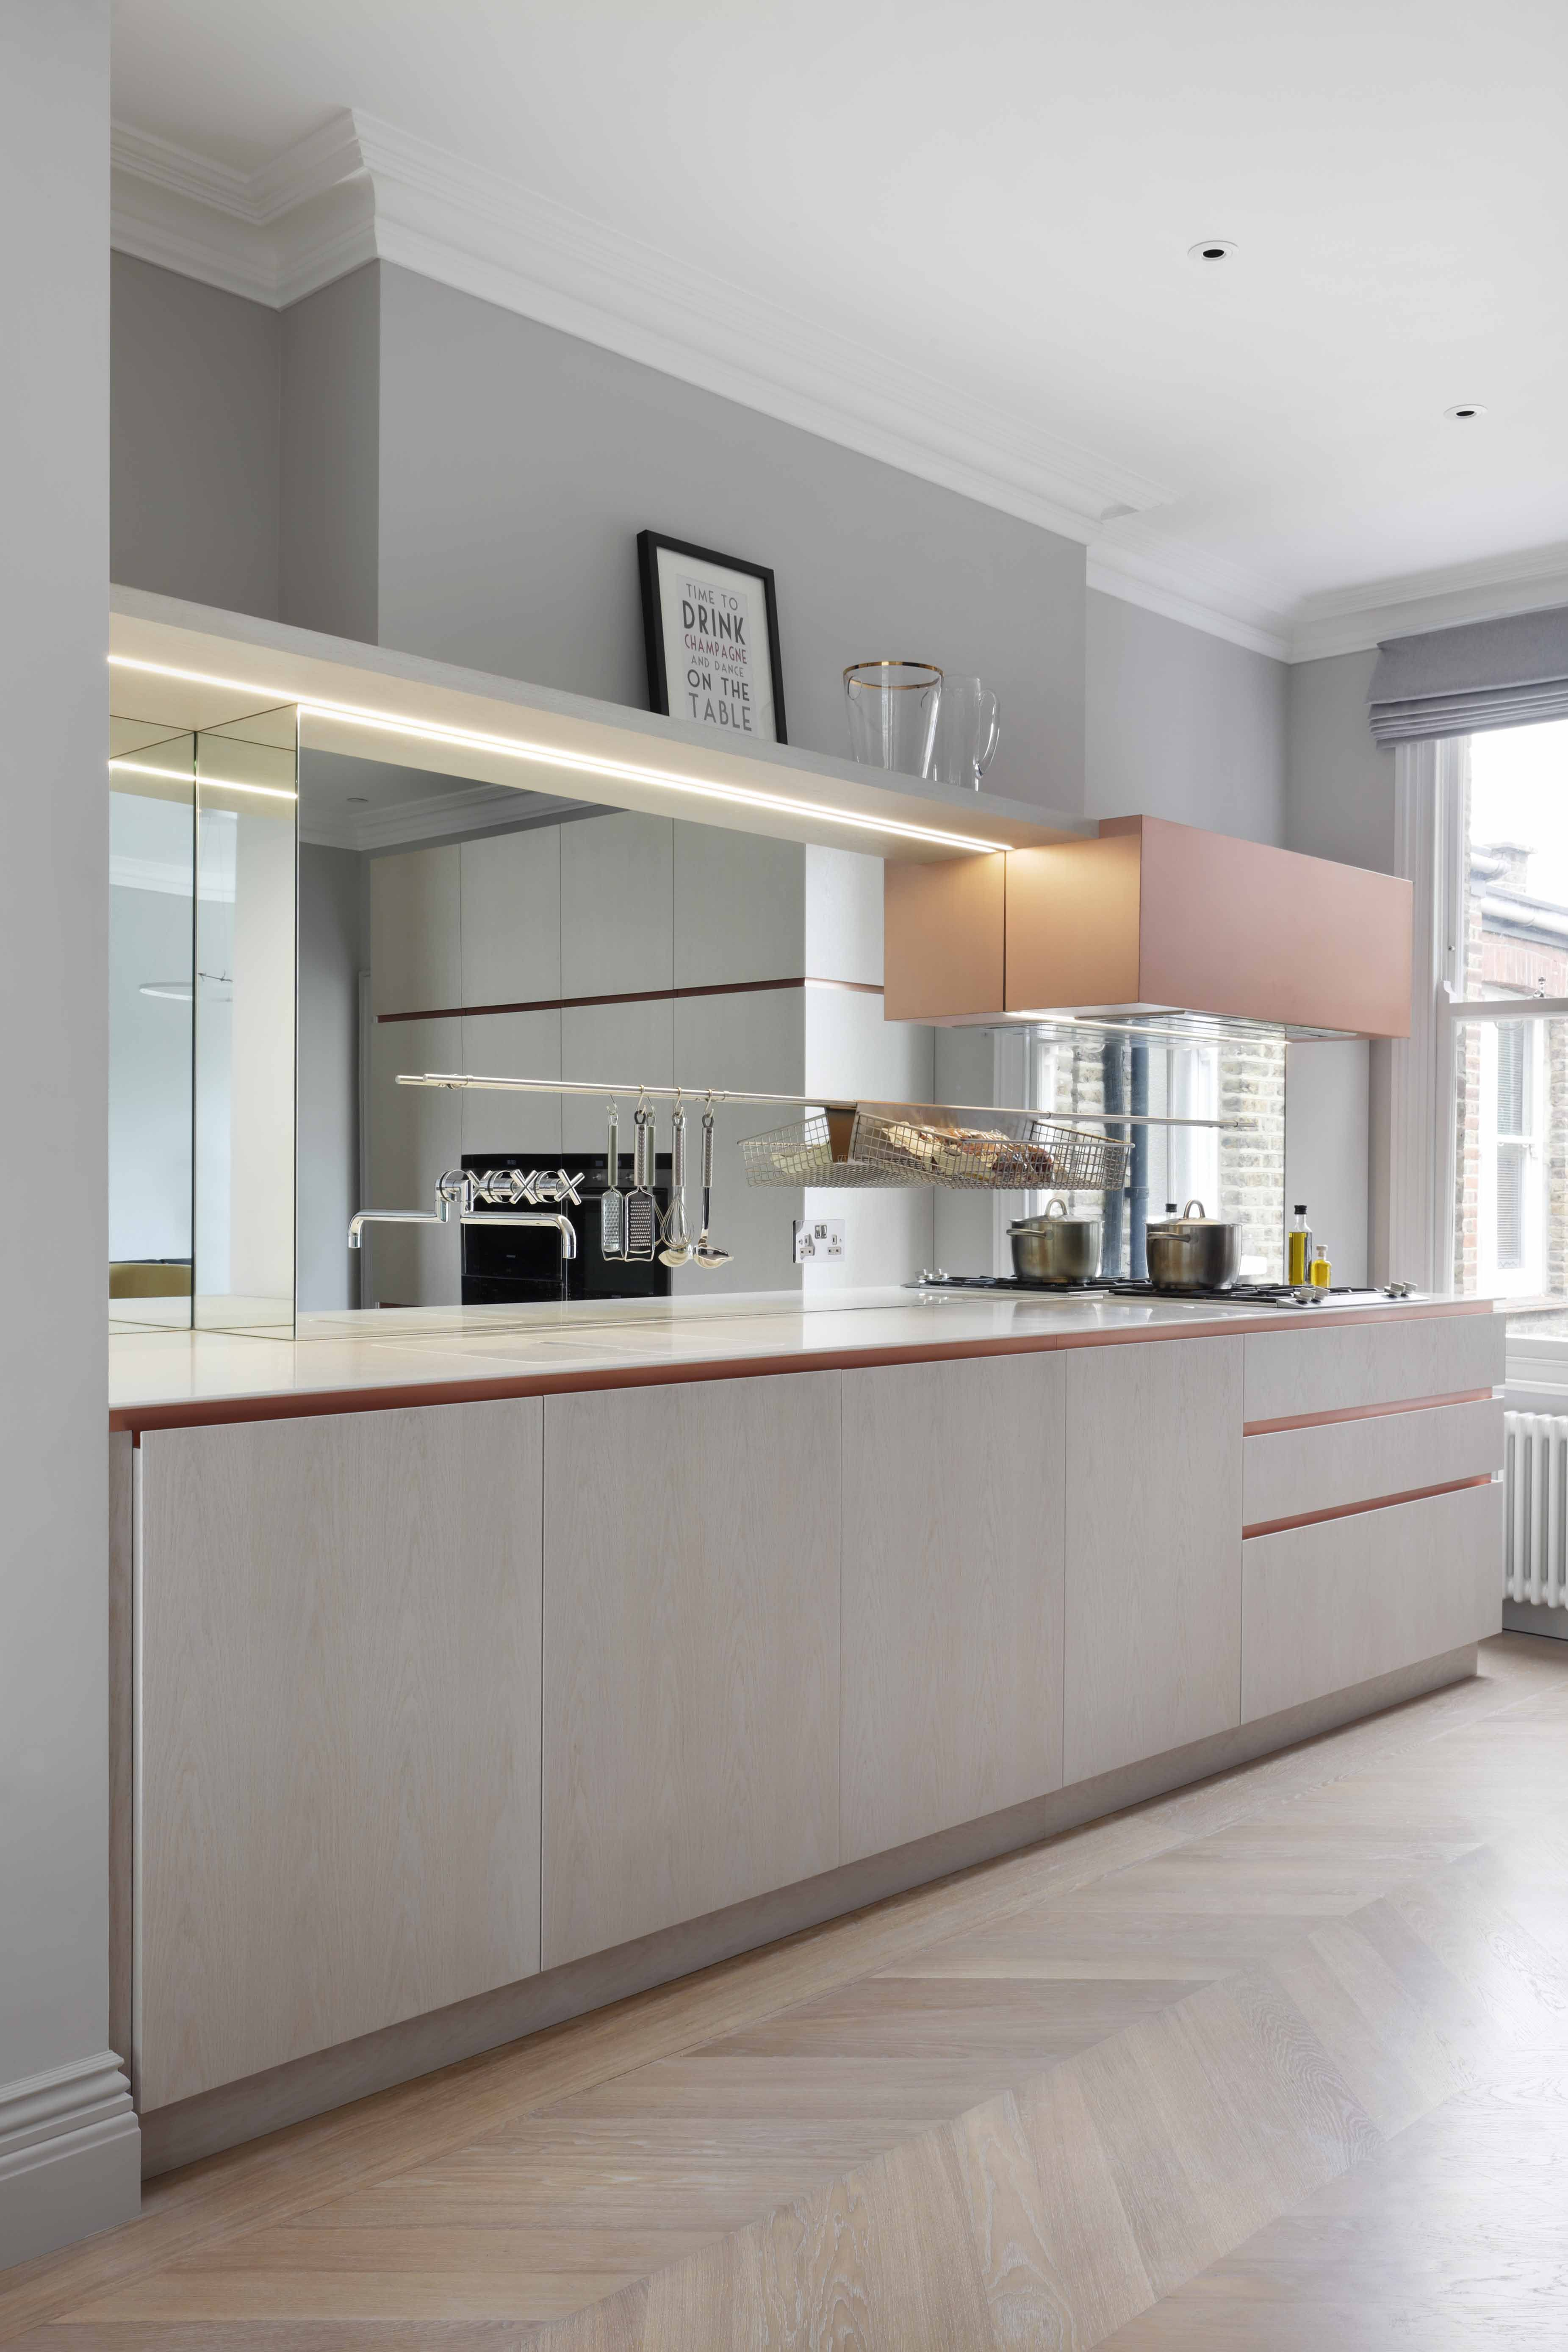 A London kitchen loaded with brass accents | Batcave | Pinterest | Küche